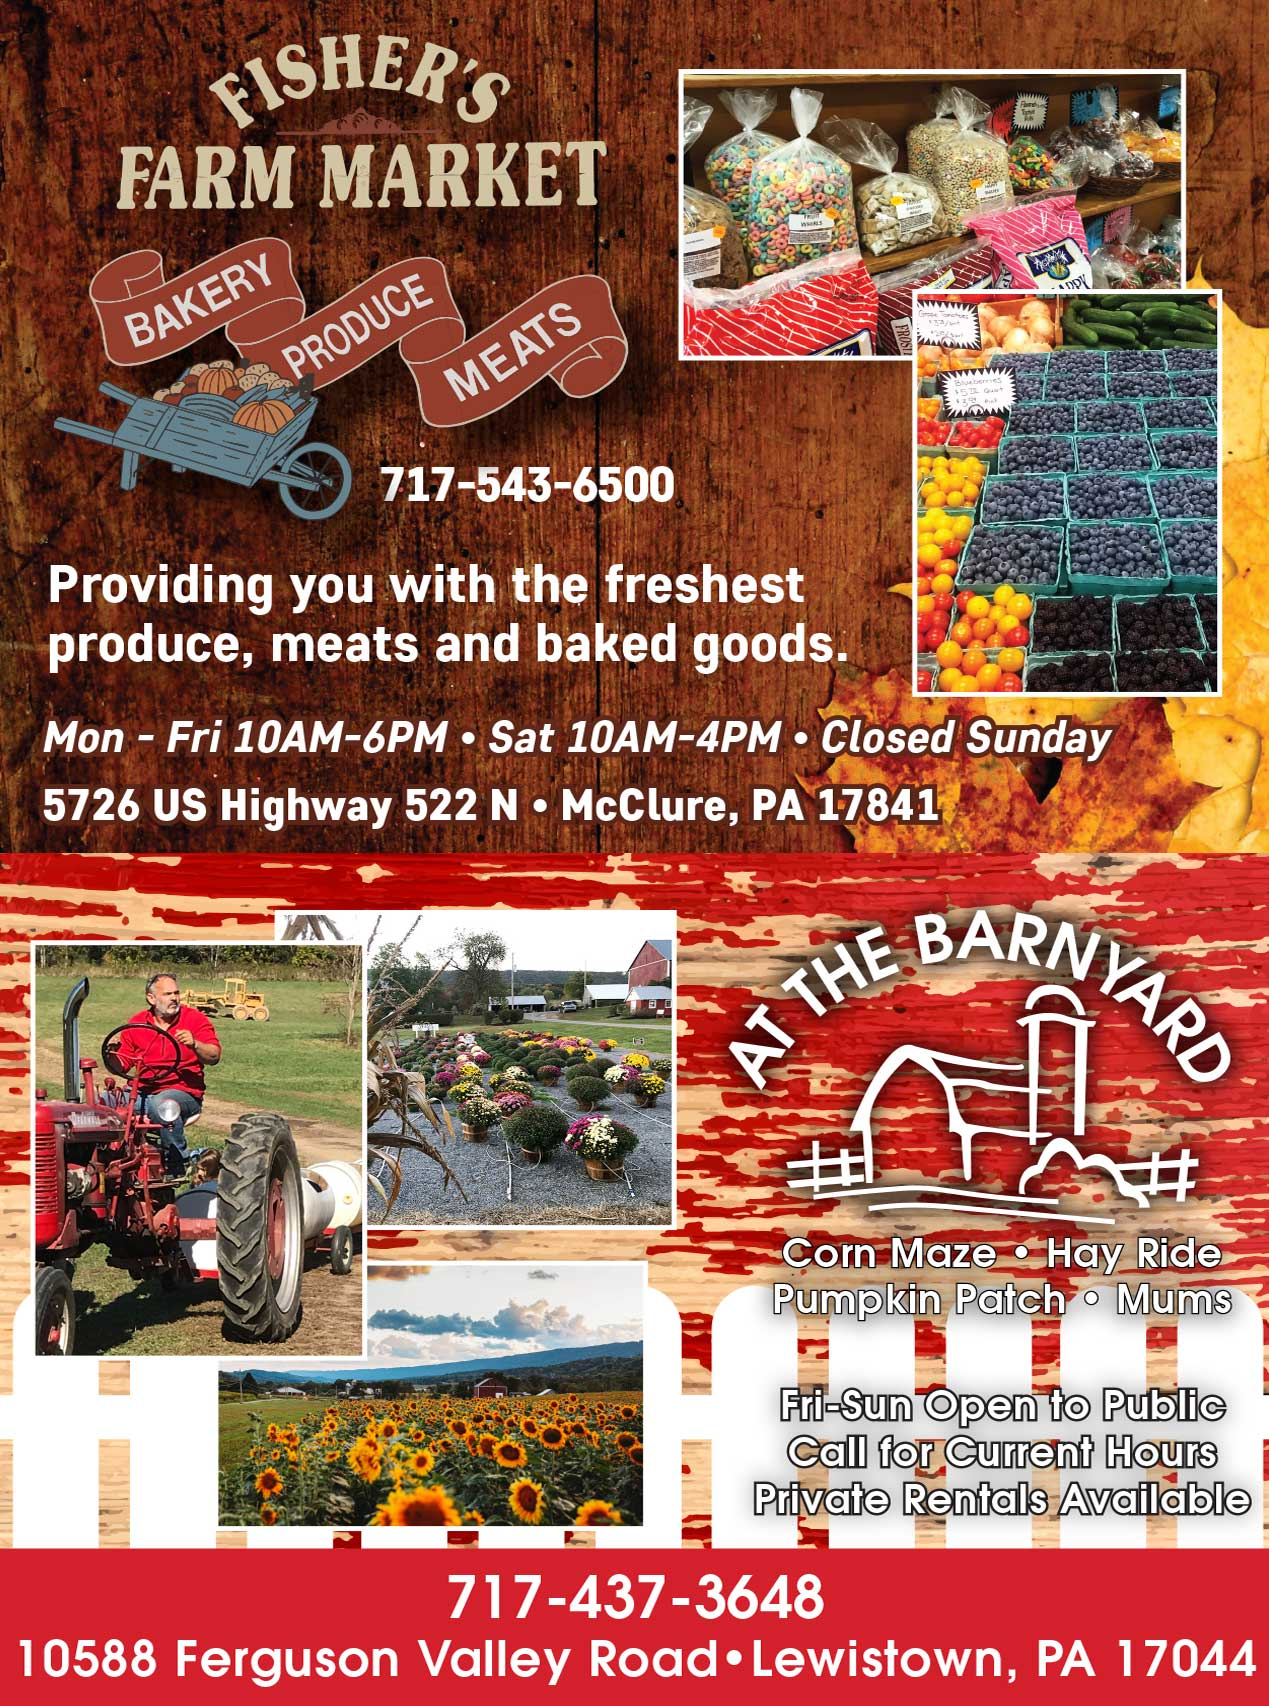 "<center>Fisher's Farm Market | <b><a href=""https://www.facebook.com/Fishers-Farm-Market-468895676470347/"" target=""_blank"" rel=""noopener noreferrer"">CLICK HERE to view the website</a></b><center>At the Barnyard 